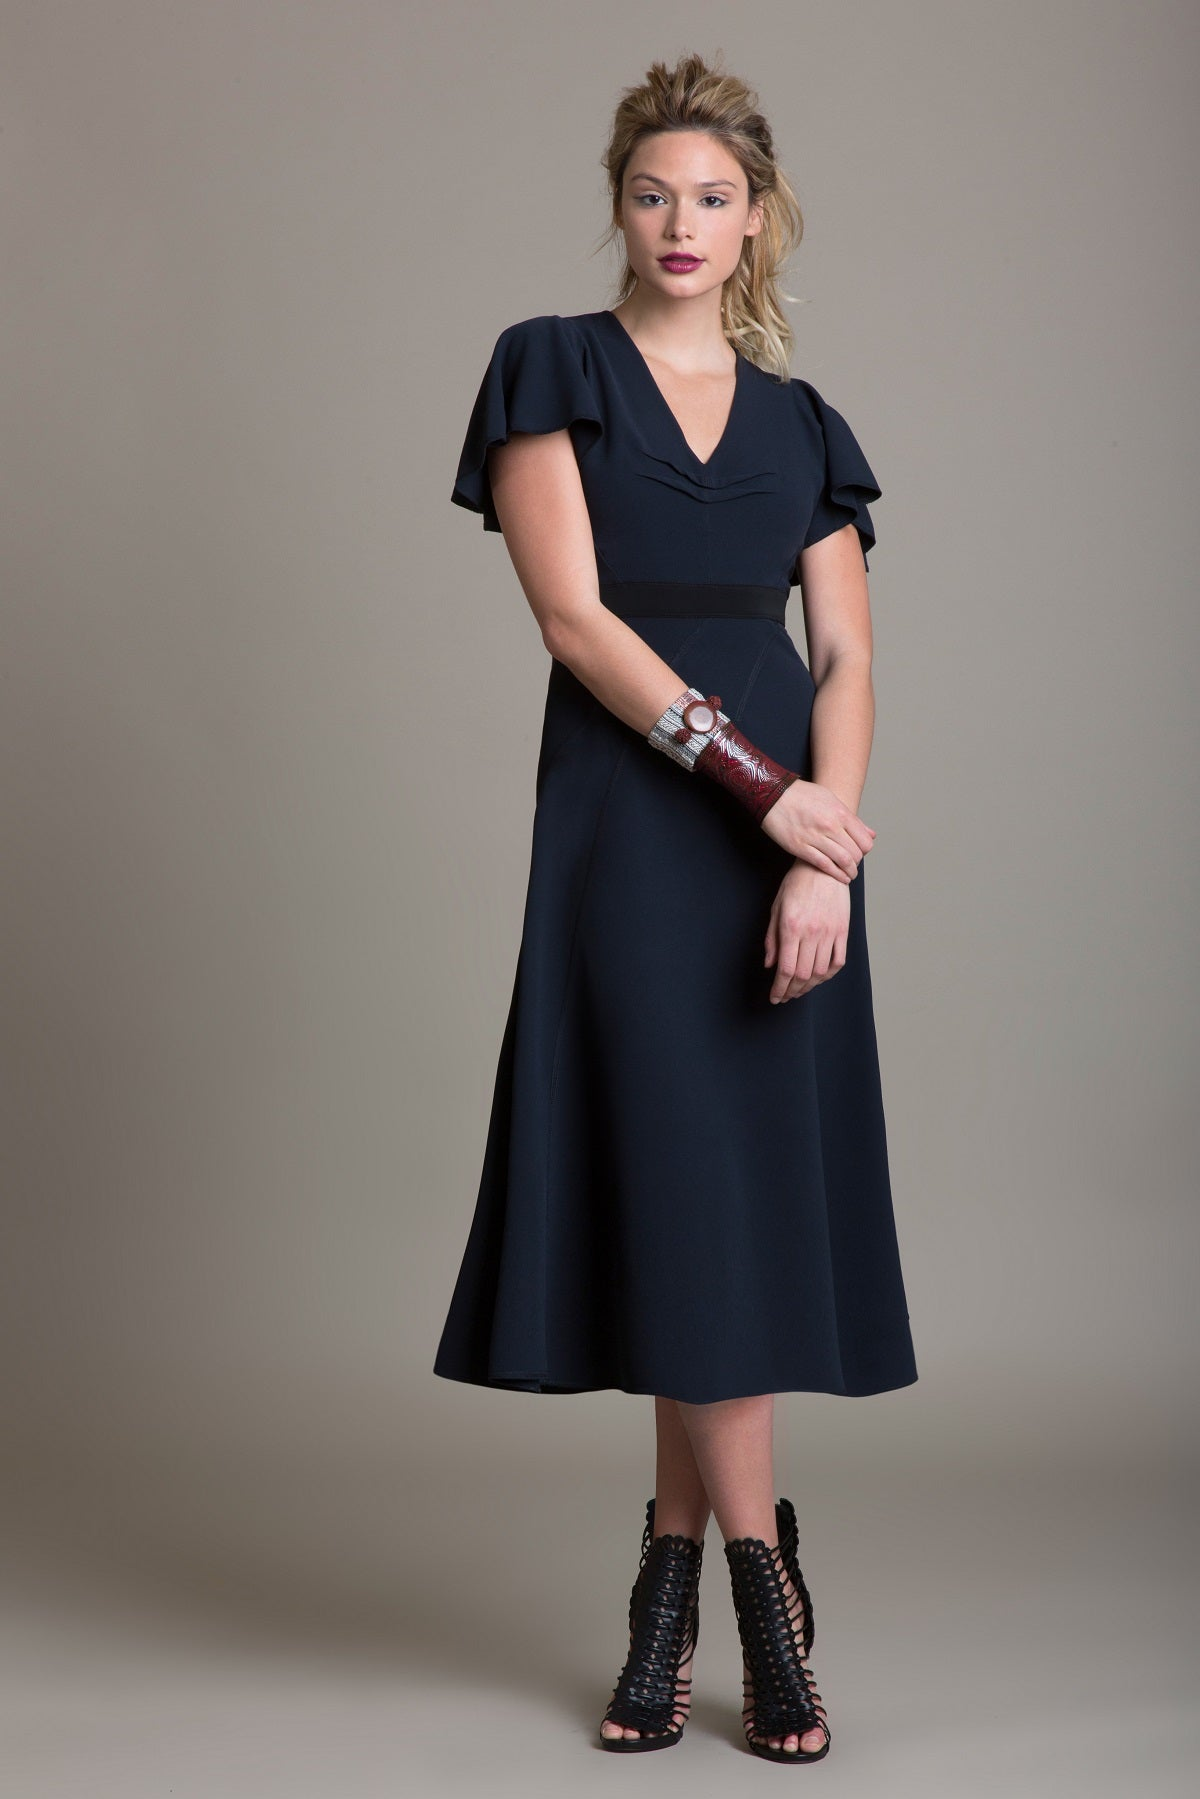 Tailored Drape Bias Cut Dress - Sample Sale